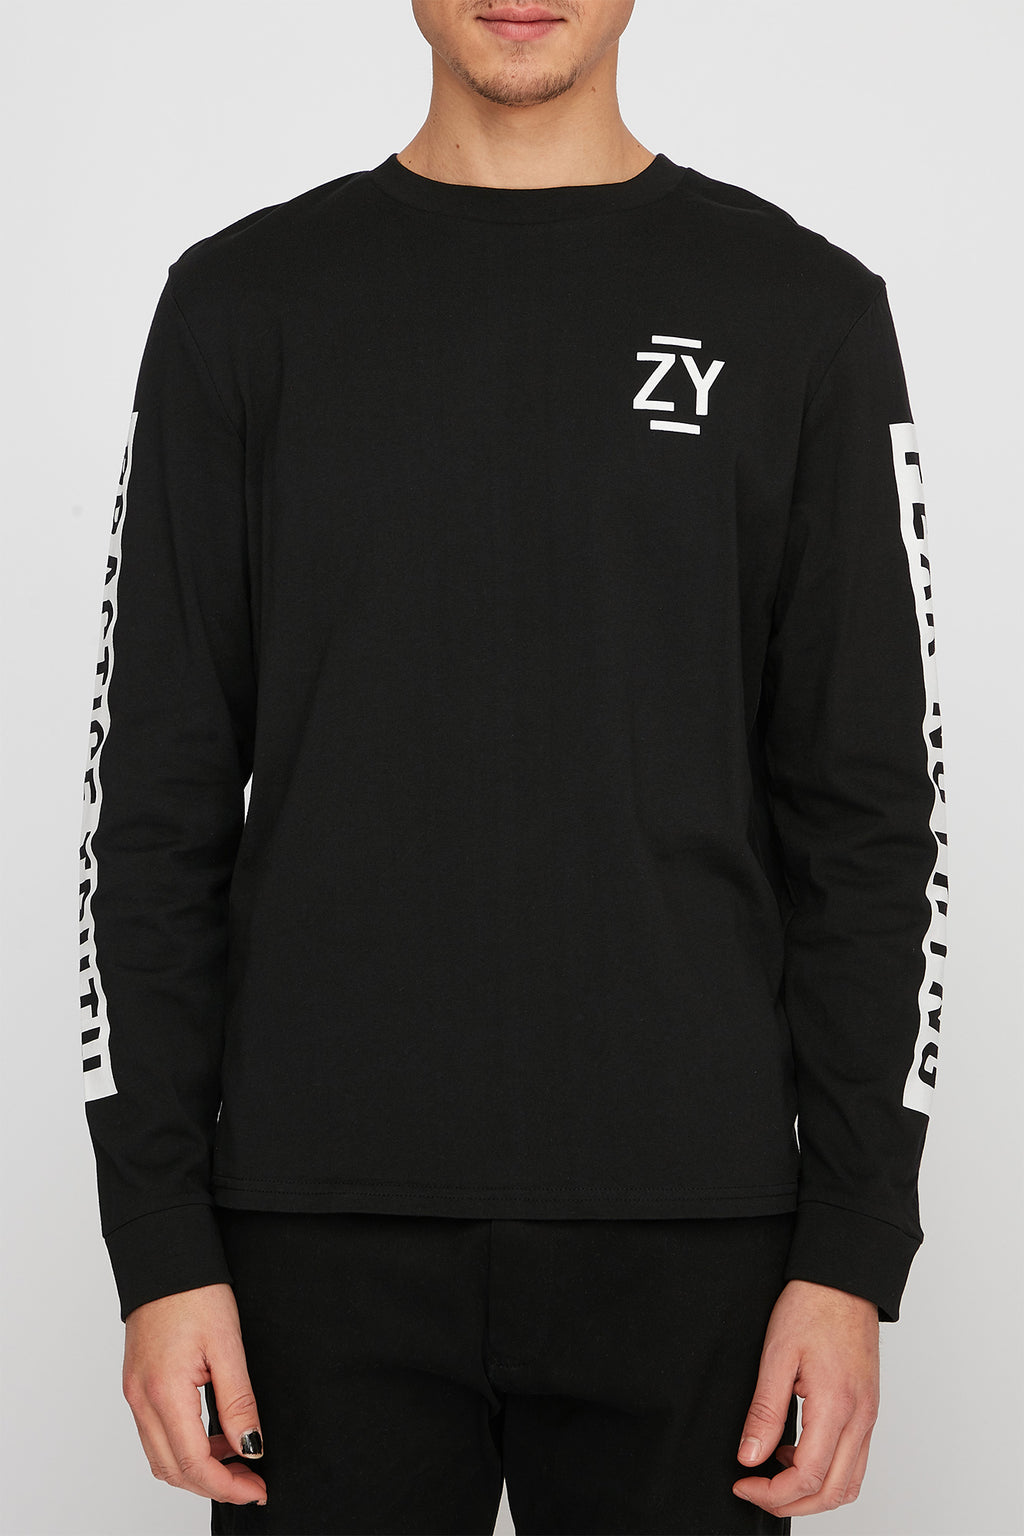 Zoo York Mens Circle Graphic Long Sleeve